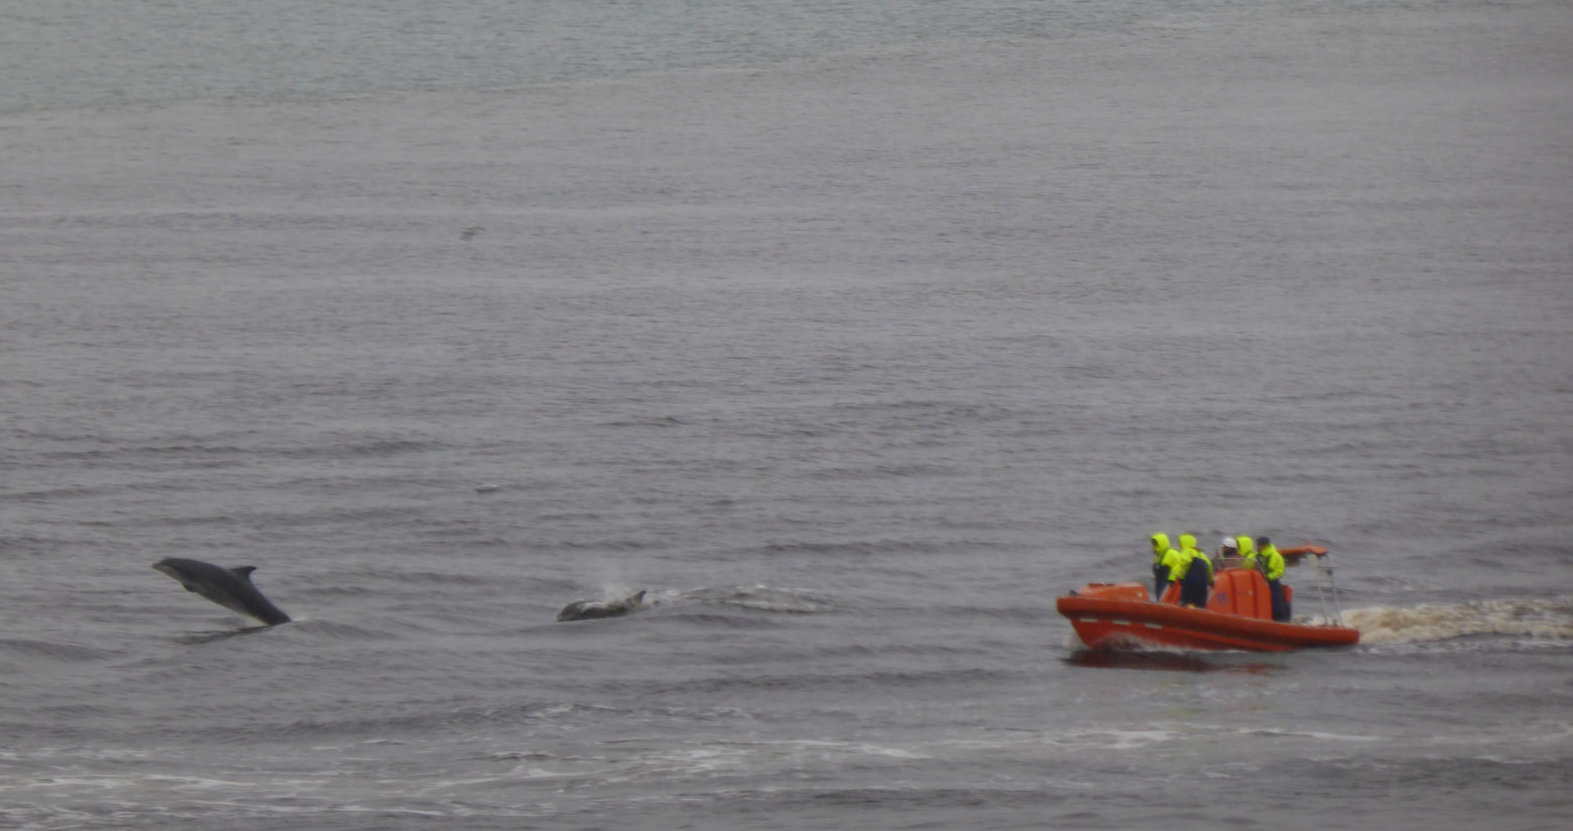 The dolphins swam alongside the lifeboat